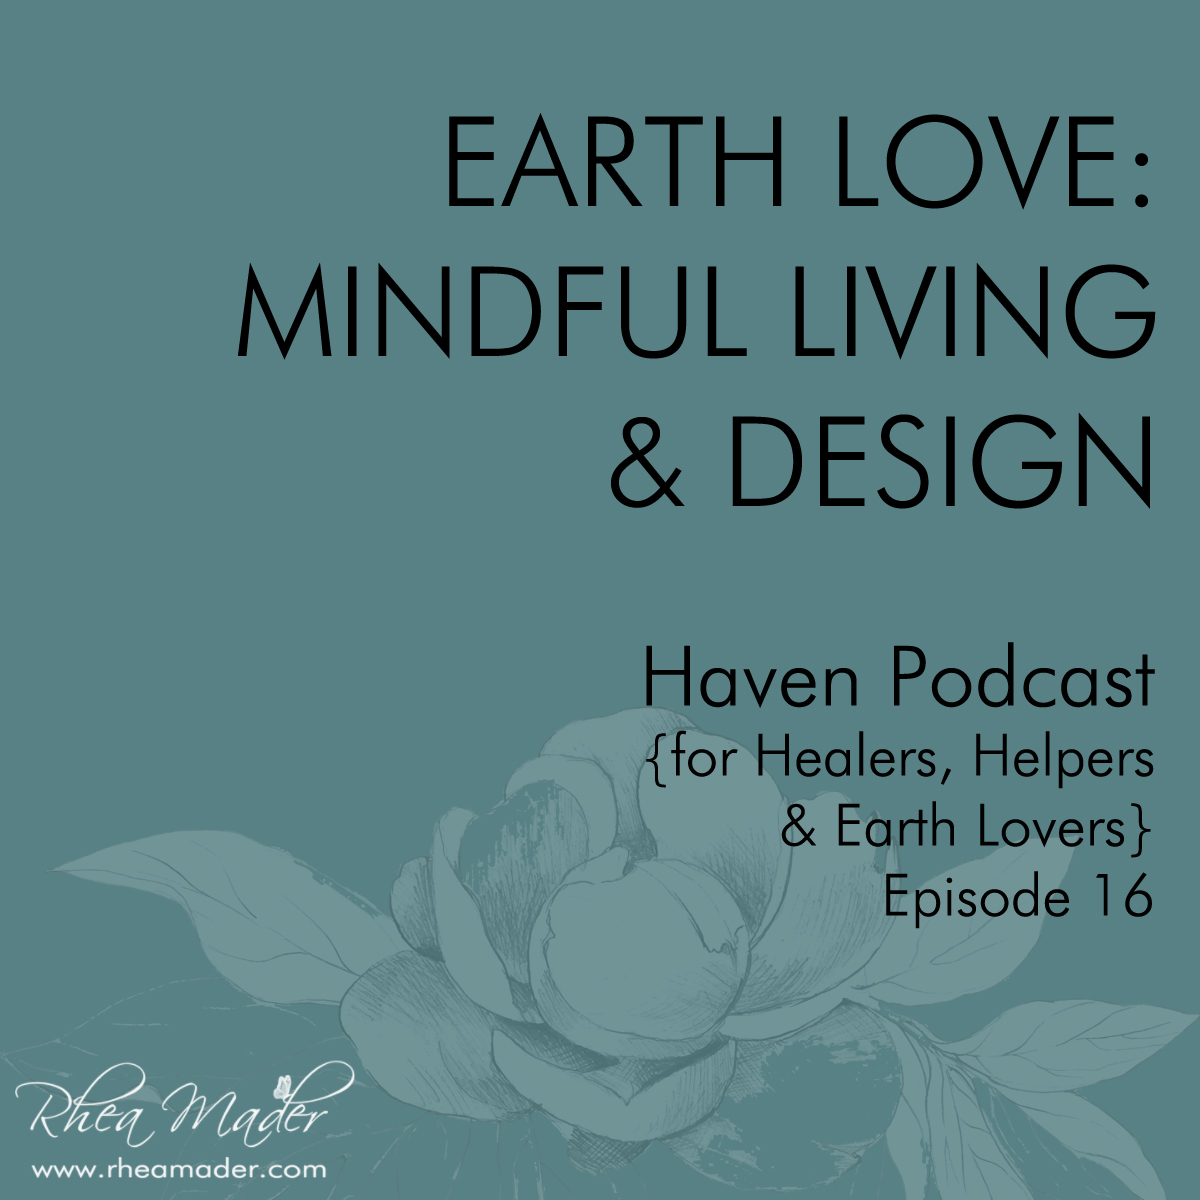 Earth Love: Mindful Living & Design